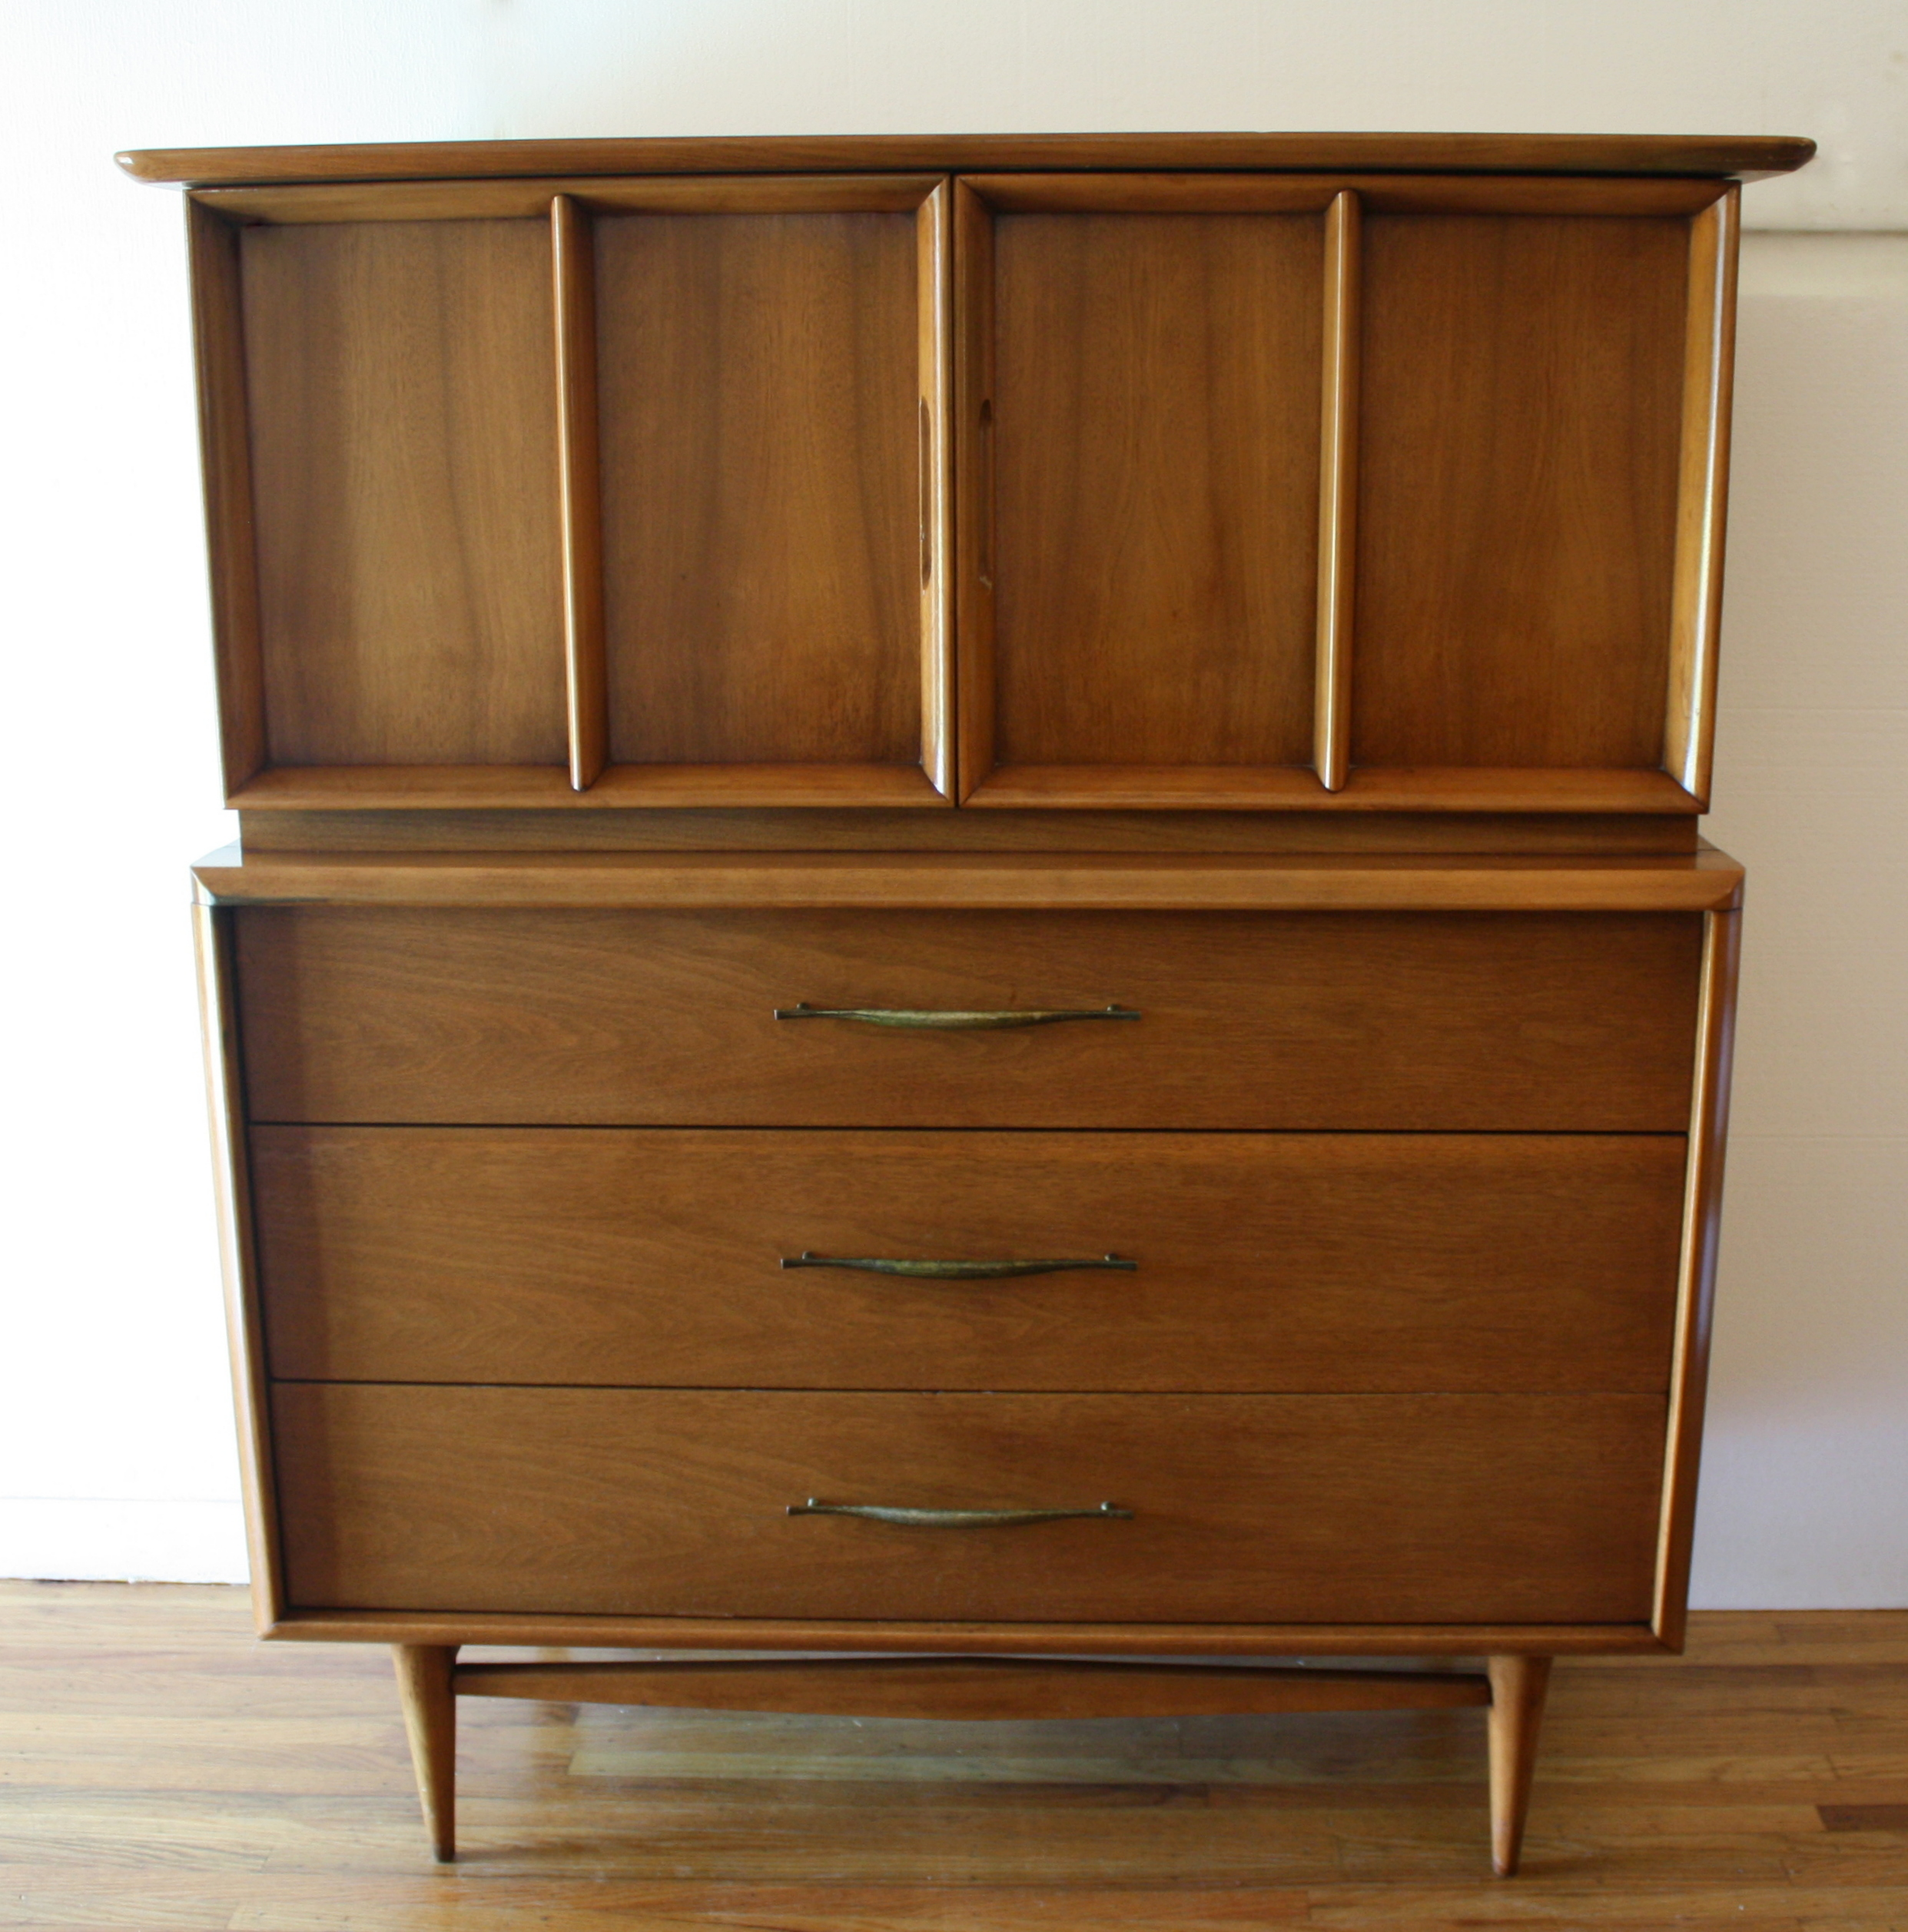 Kent Coffey Foreteller tall dresser armoire 1.JPG